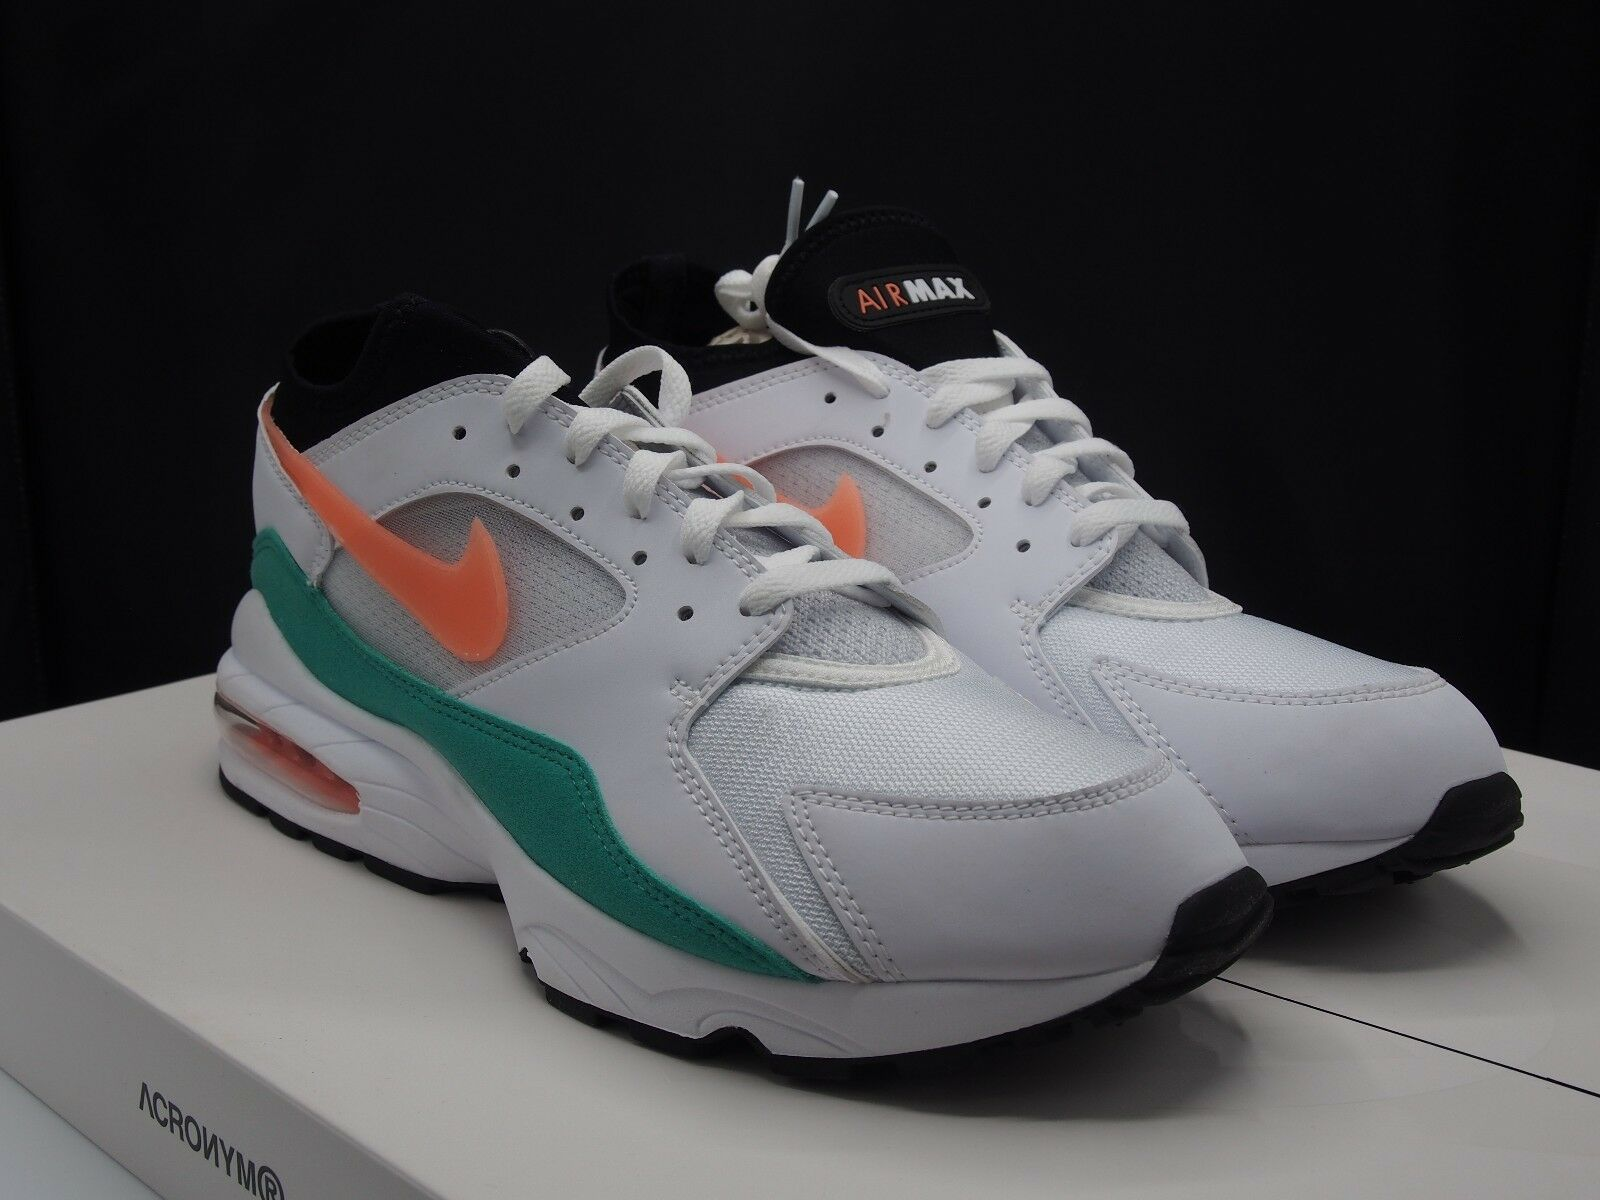 Nike Air Max 93  Watermelon  306551-105 Men's 11.5 US